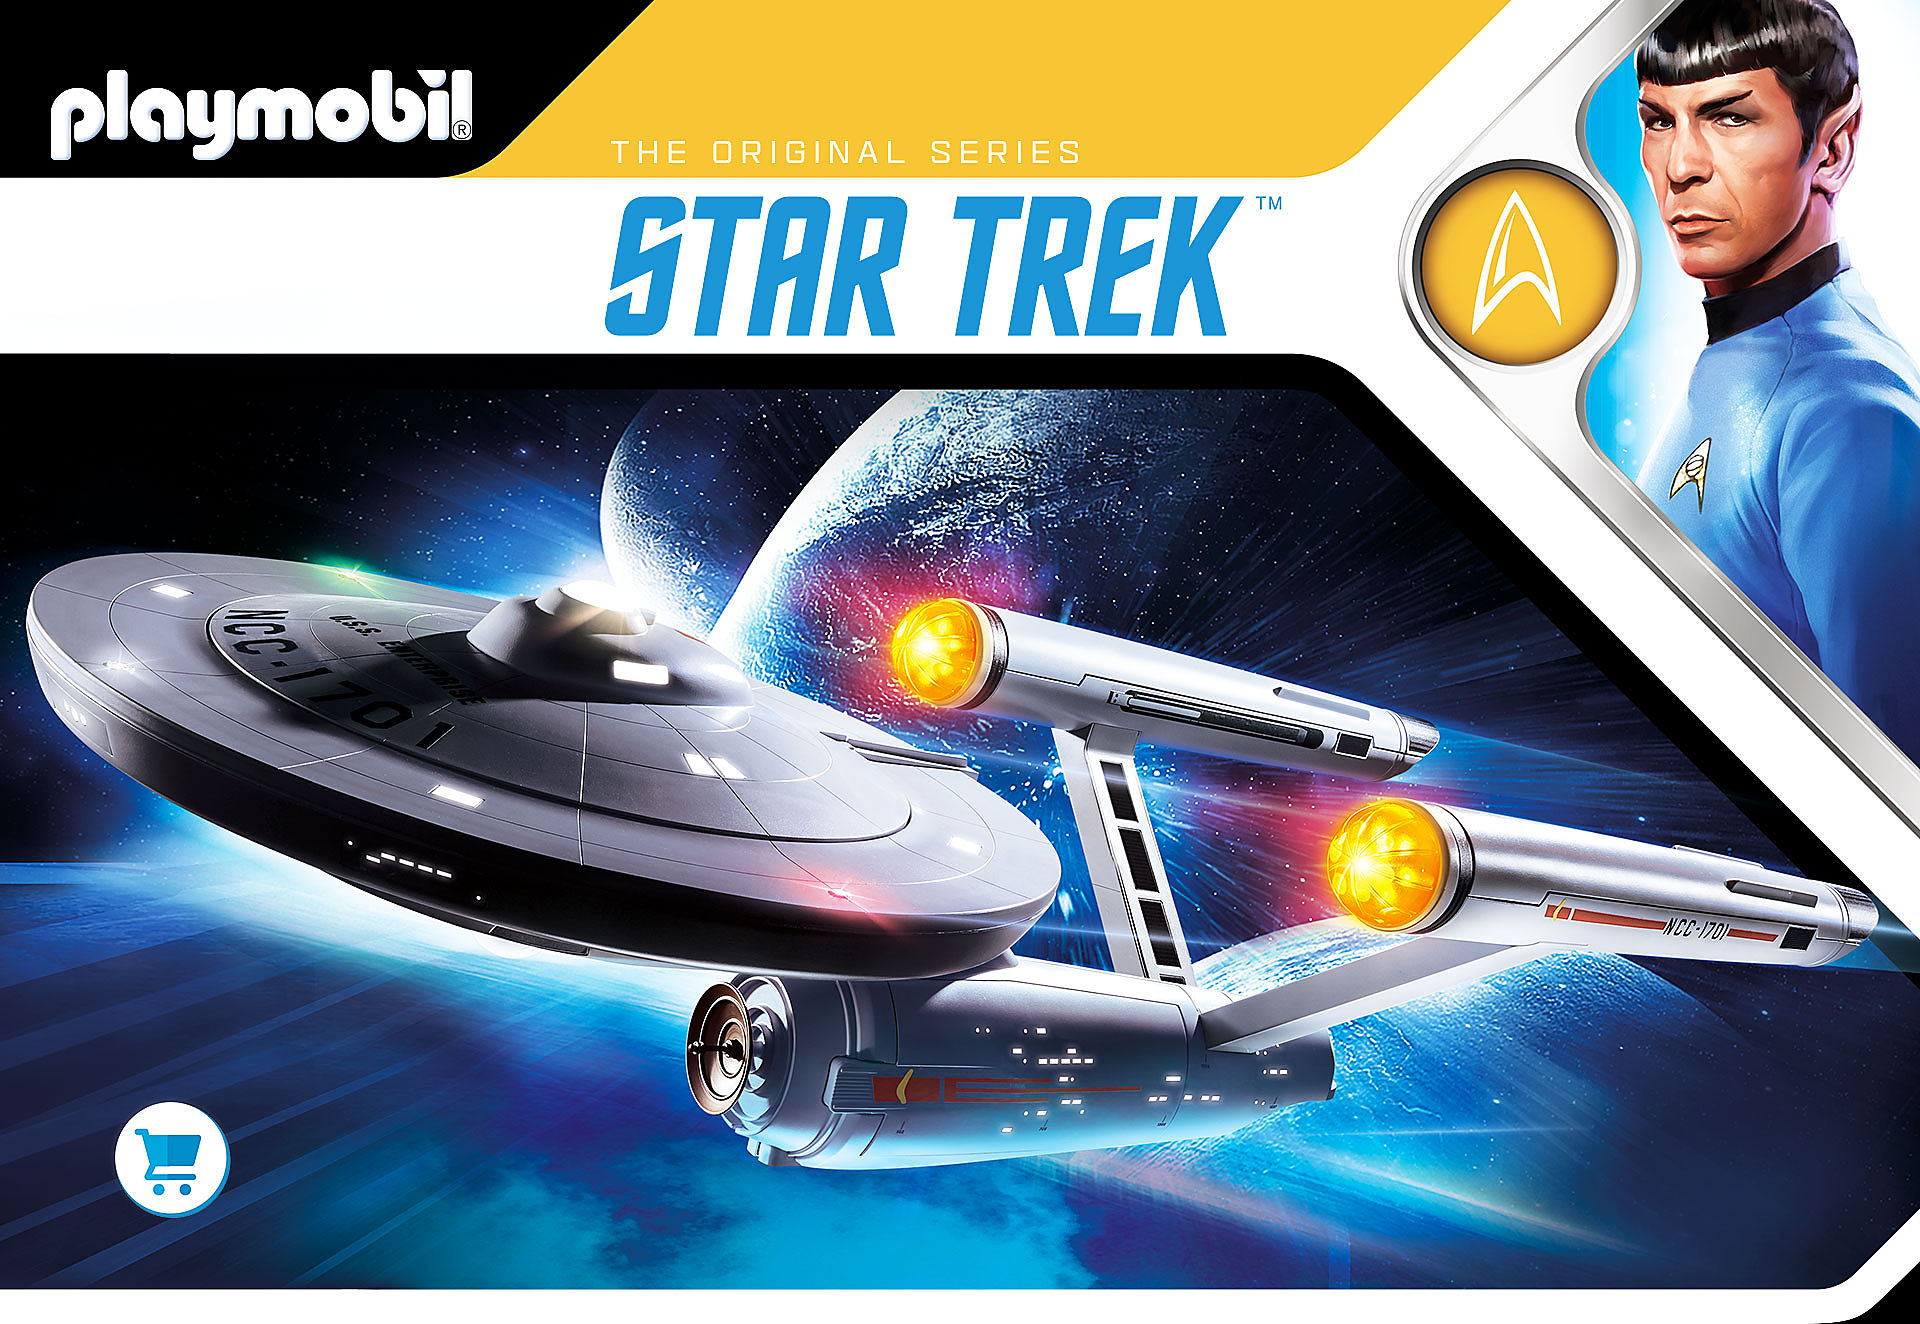 Image shows Mr. Spock right above and the U.S.S. Enterprise NCC-1701 flying in space around planets